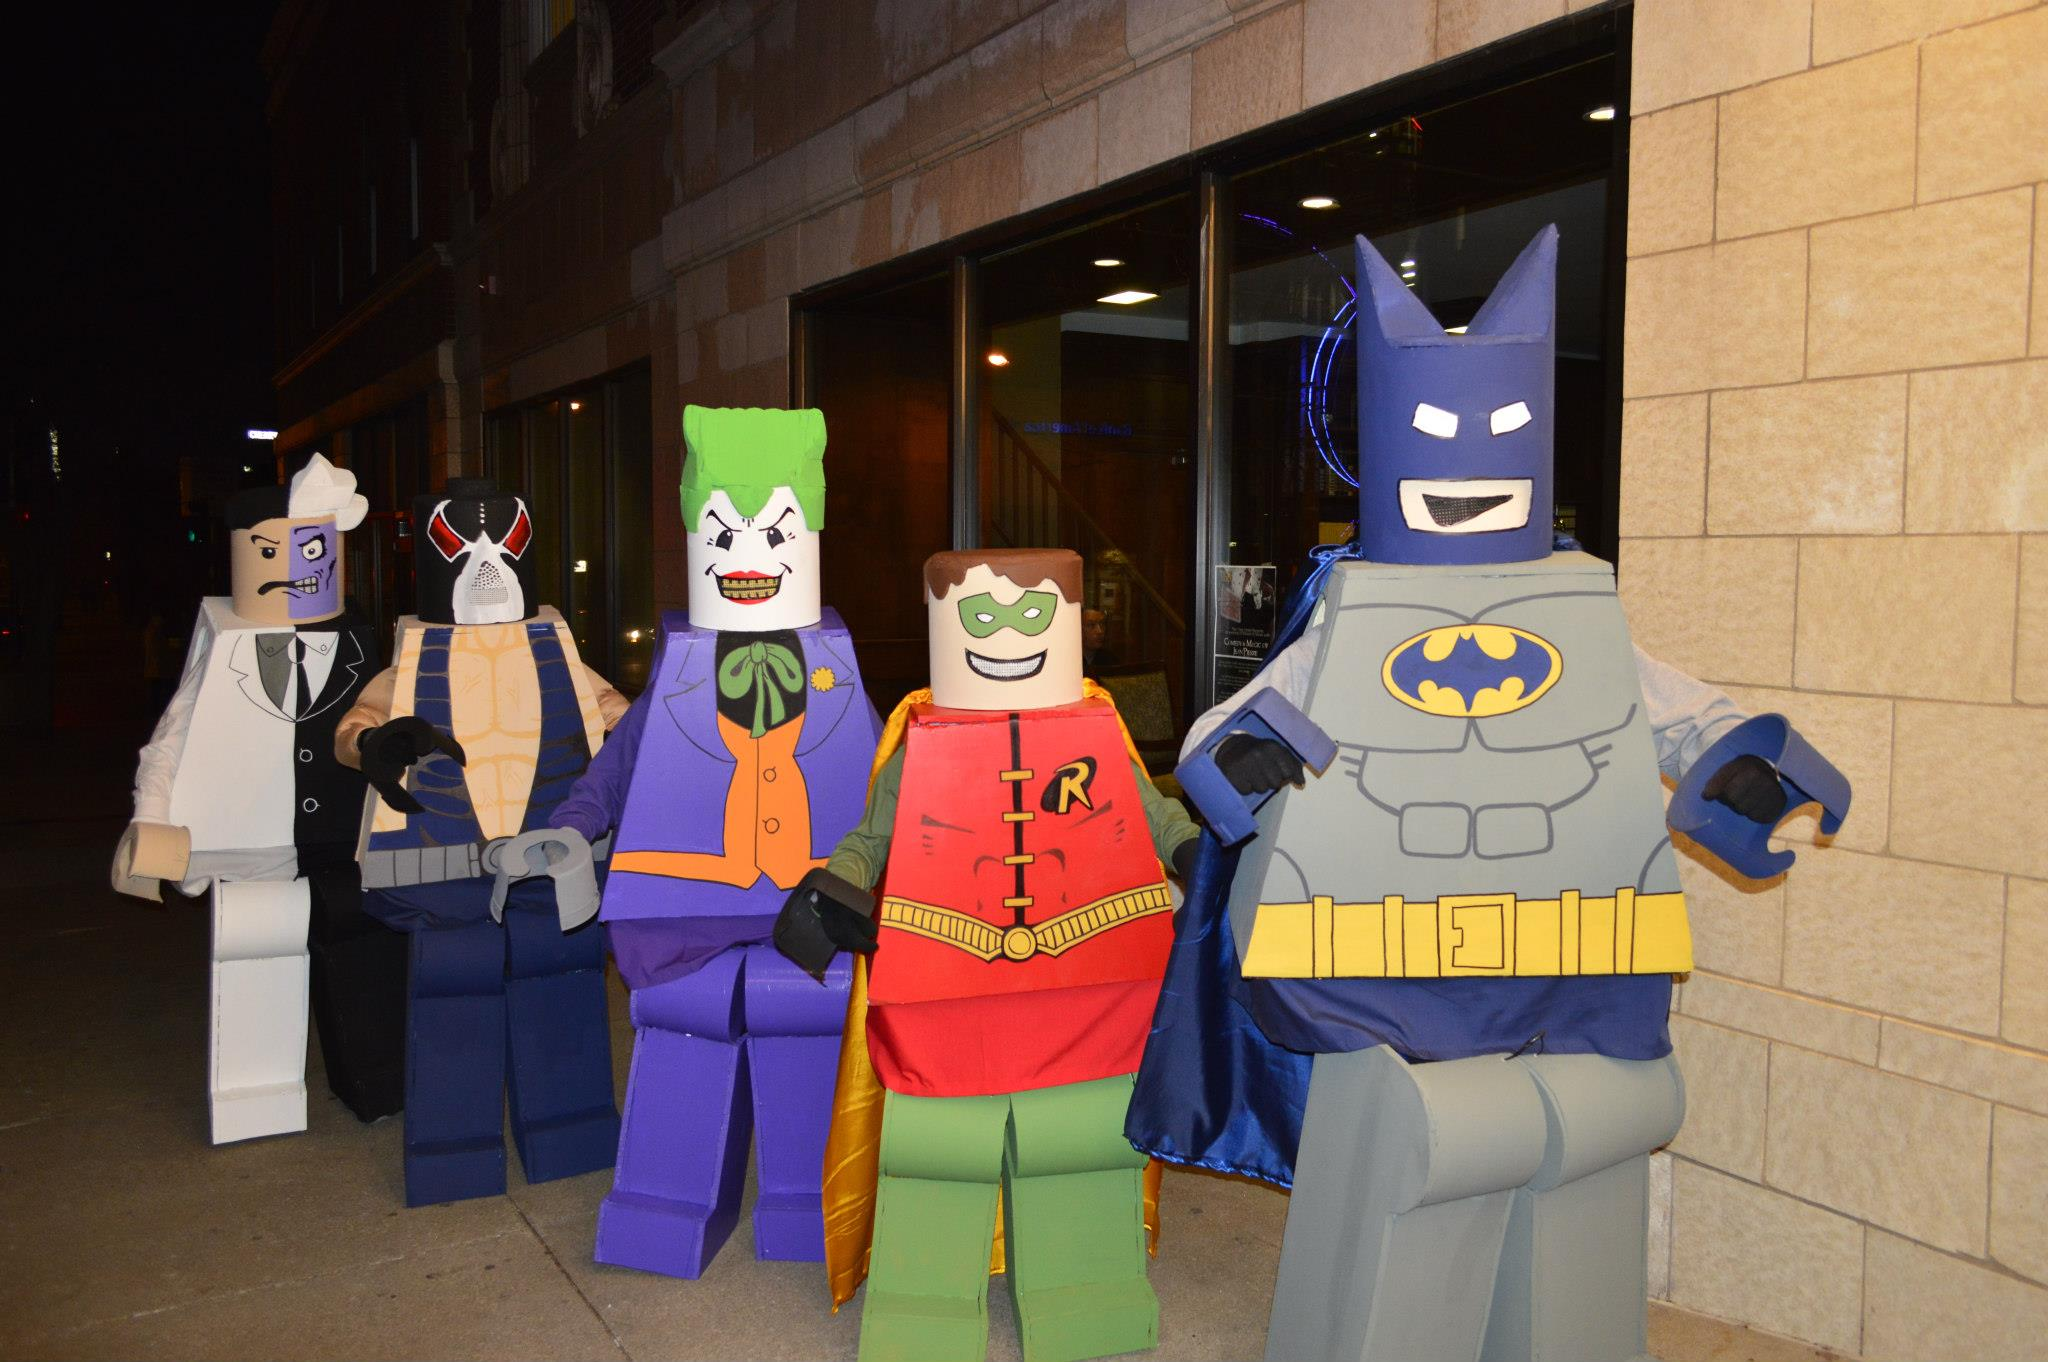 Lego Batman images Lego Halloween Costumes HD wallpaper and background photos & Lego Batman images Lego Halloween Costumes HD wallpaper and ...